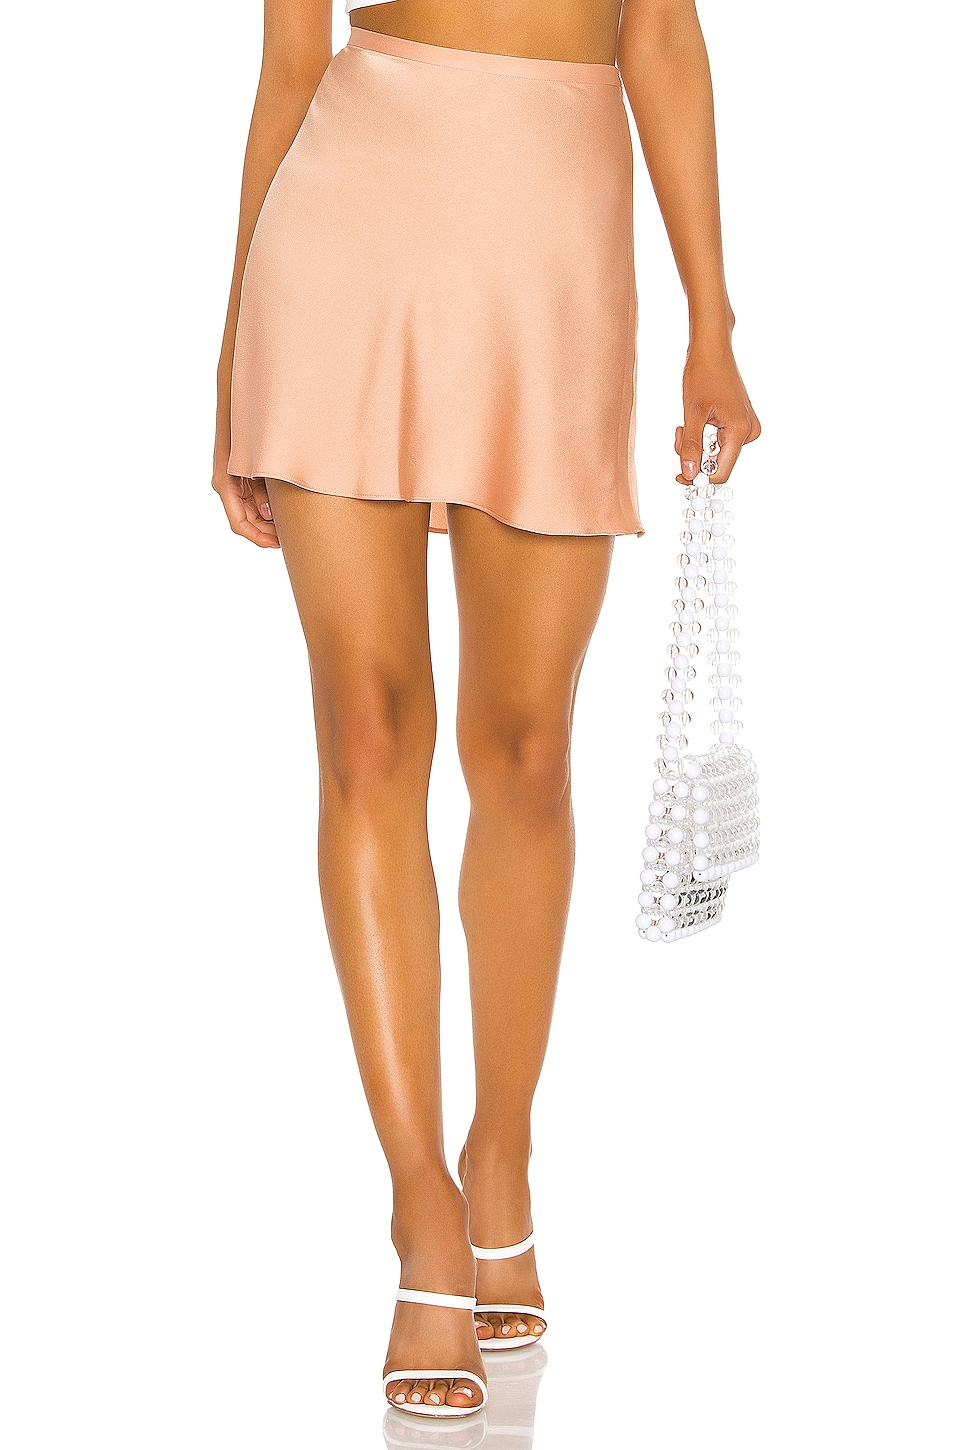 Endless Summer Scarlett Mini Lingerie Skirt in Blush Nude